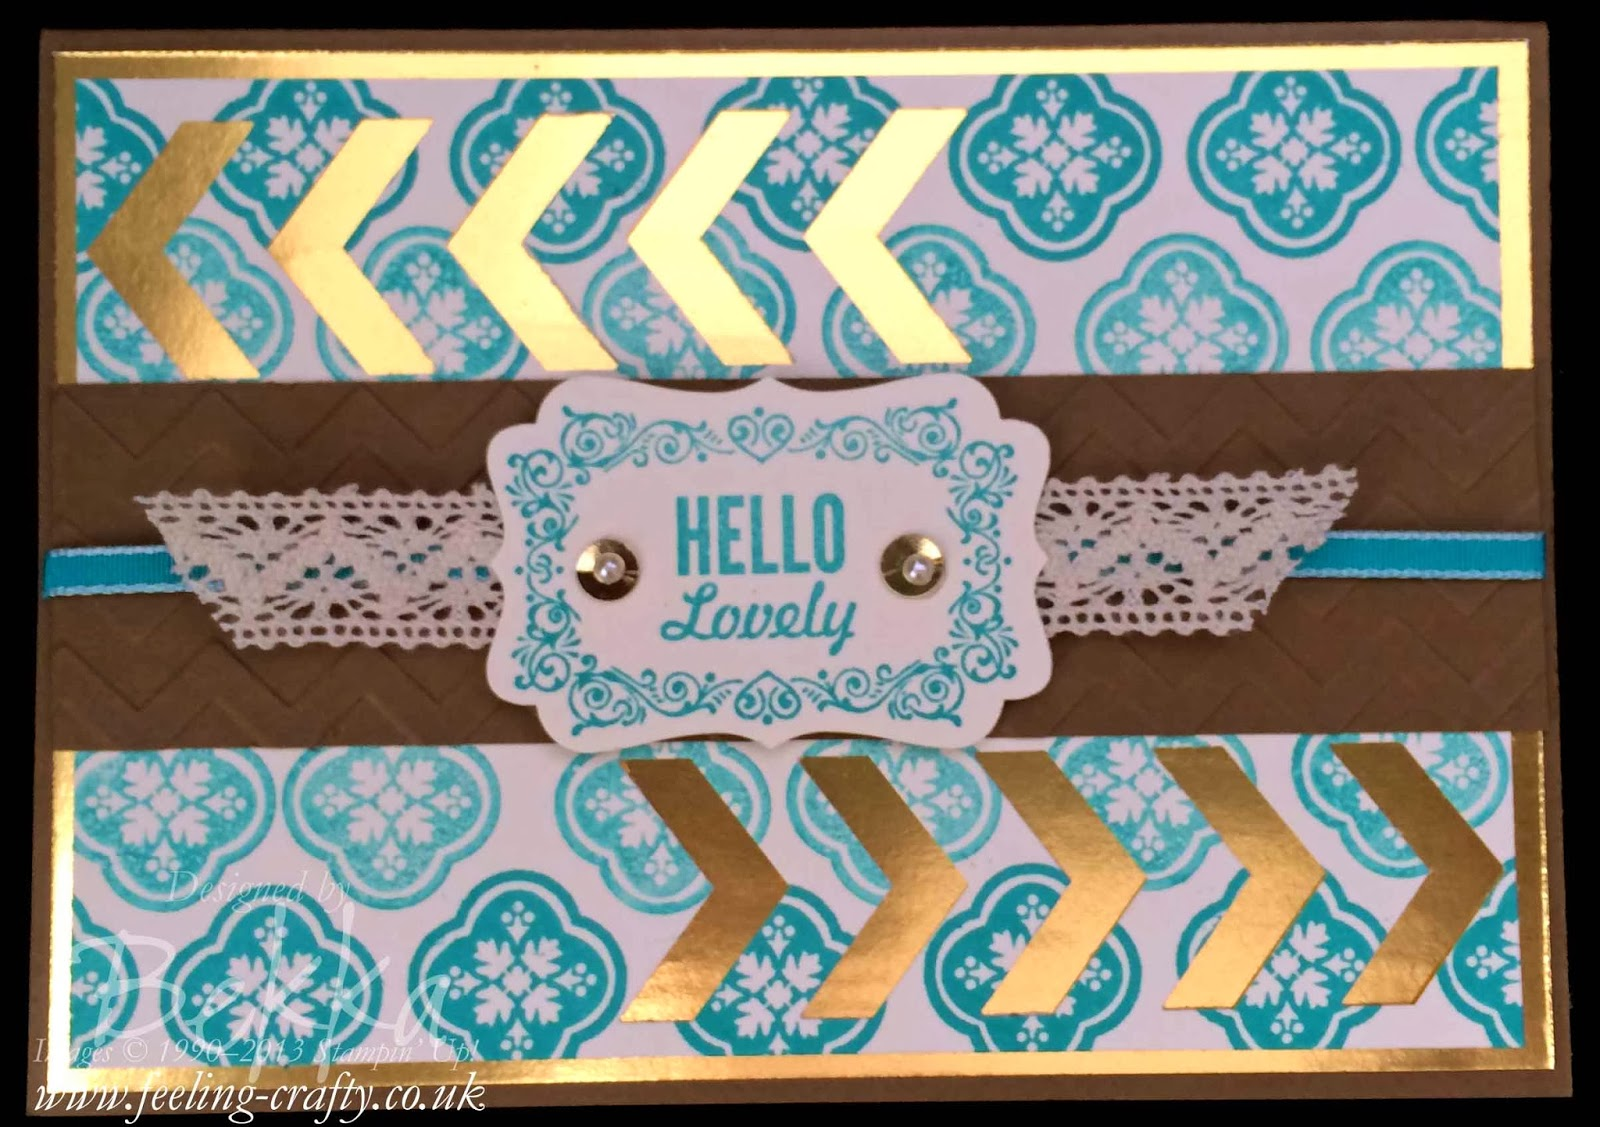 Hello Lovely Card with Tutorial showing How to line up your Stampin' Up! Clear Mount Stamps - check out this blog for lots of great tips